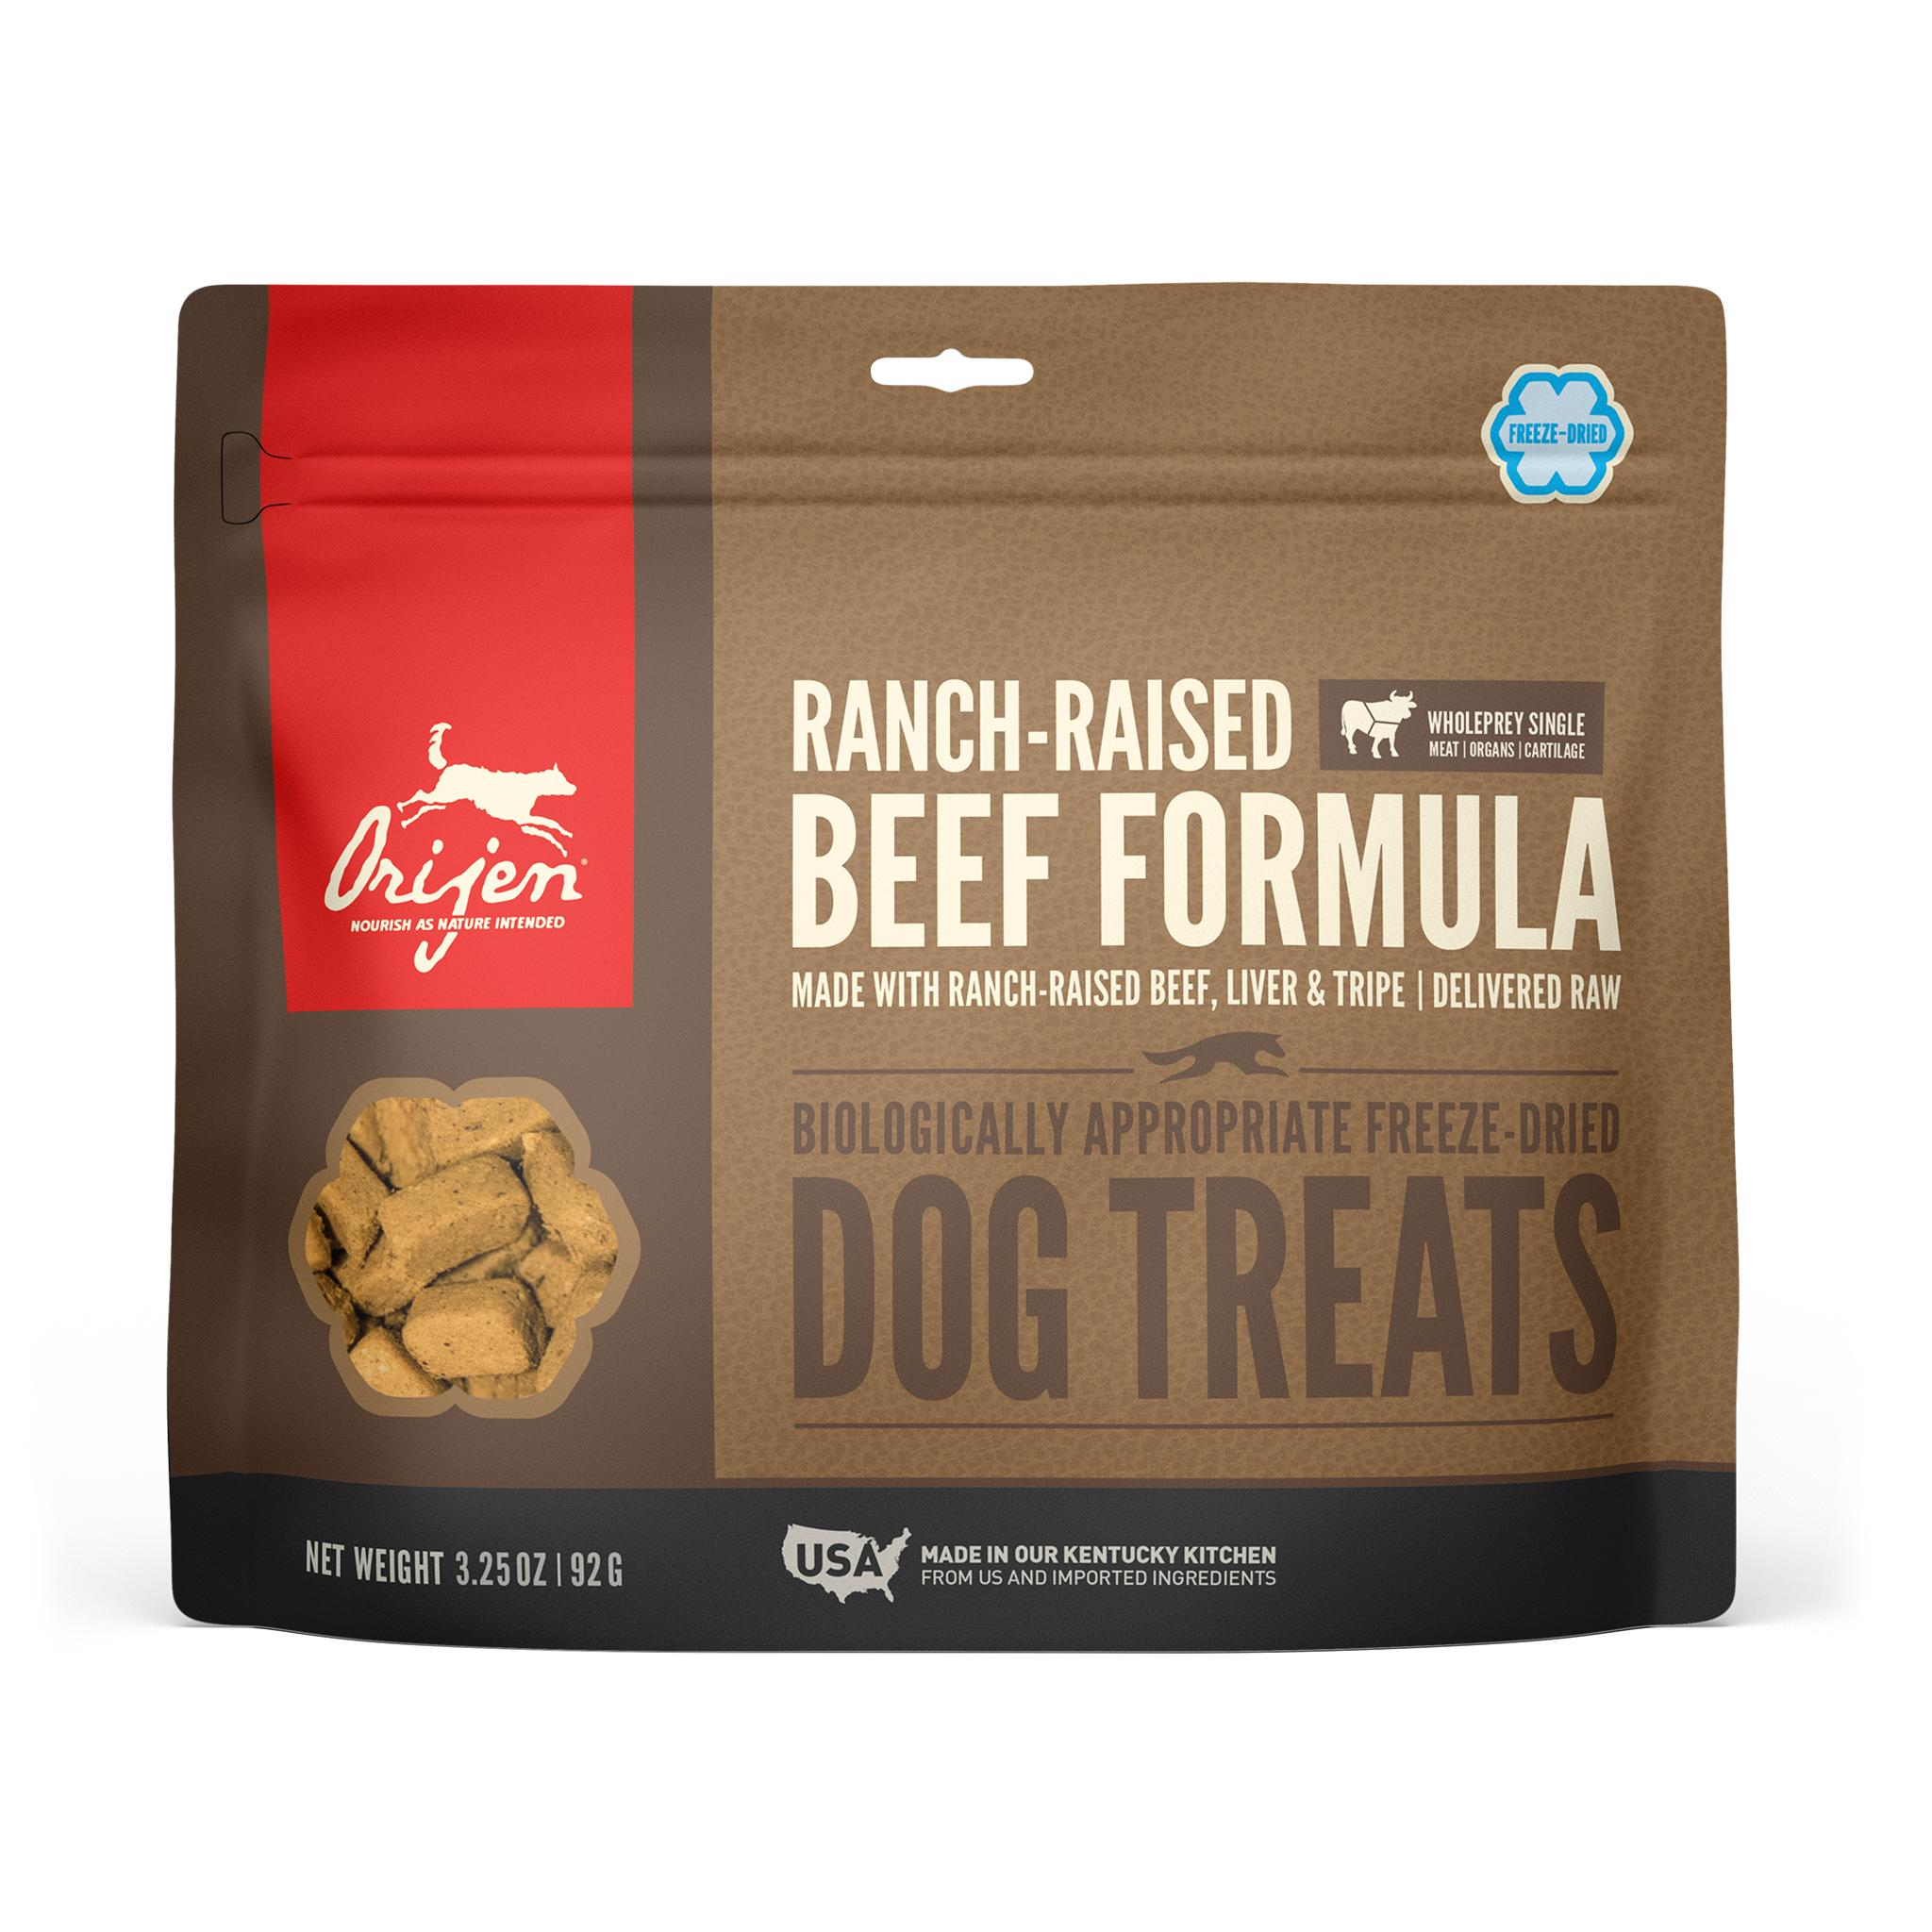 ORIJEN Ranch-Raised Beef Grain-Free Freeze-Dried Dog Treats, 3.25-oz